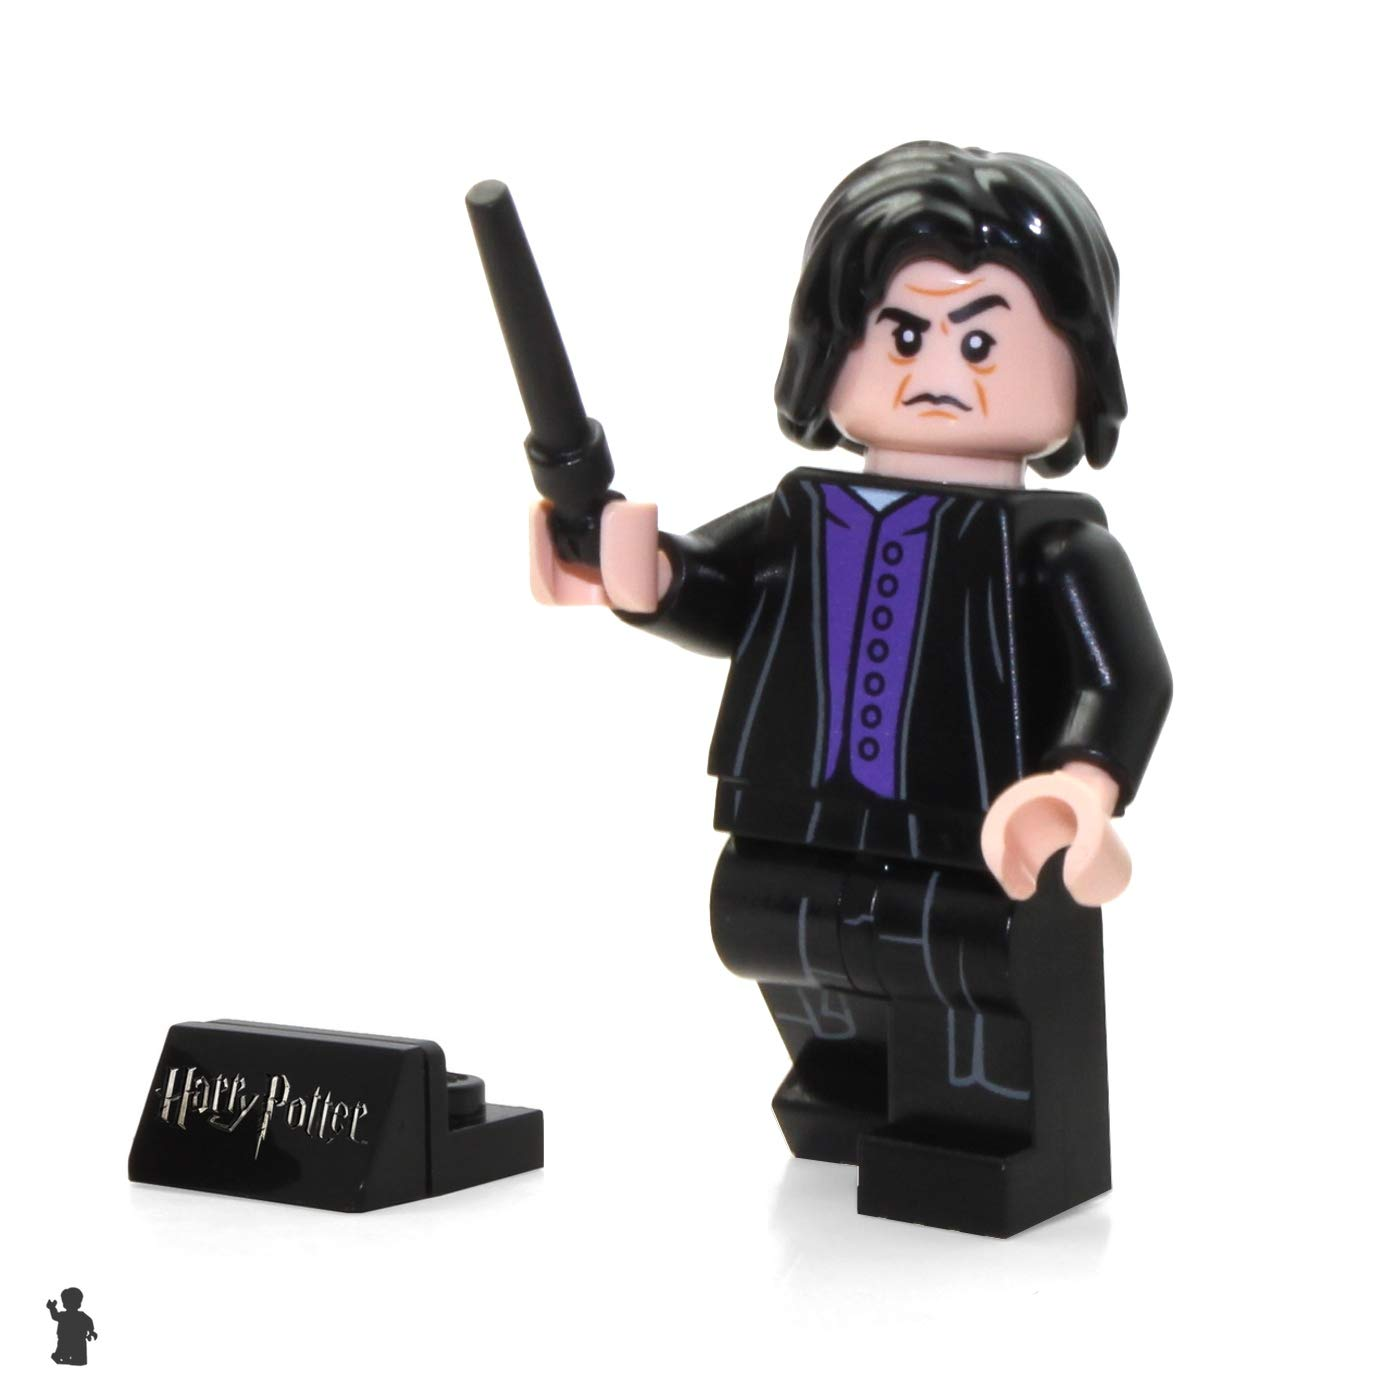 Severus Snape 75956 LEGO 2018 Harry Potter Minifigure with Black Wand and Display Stand